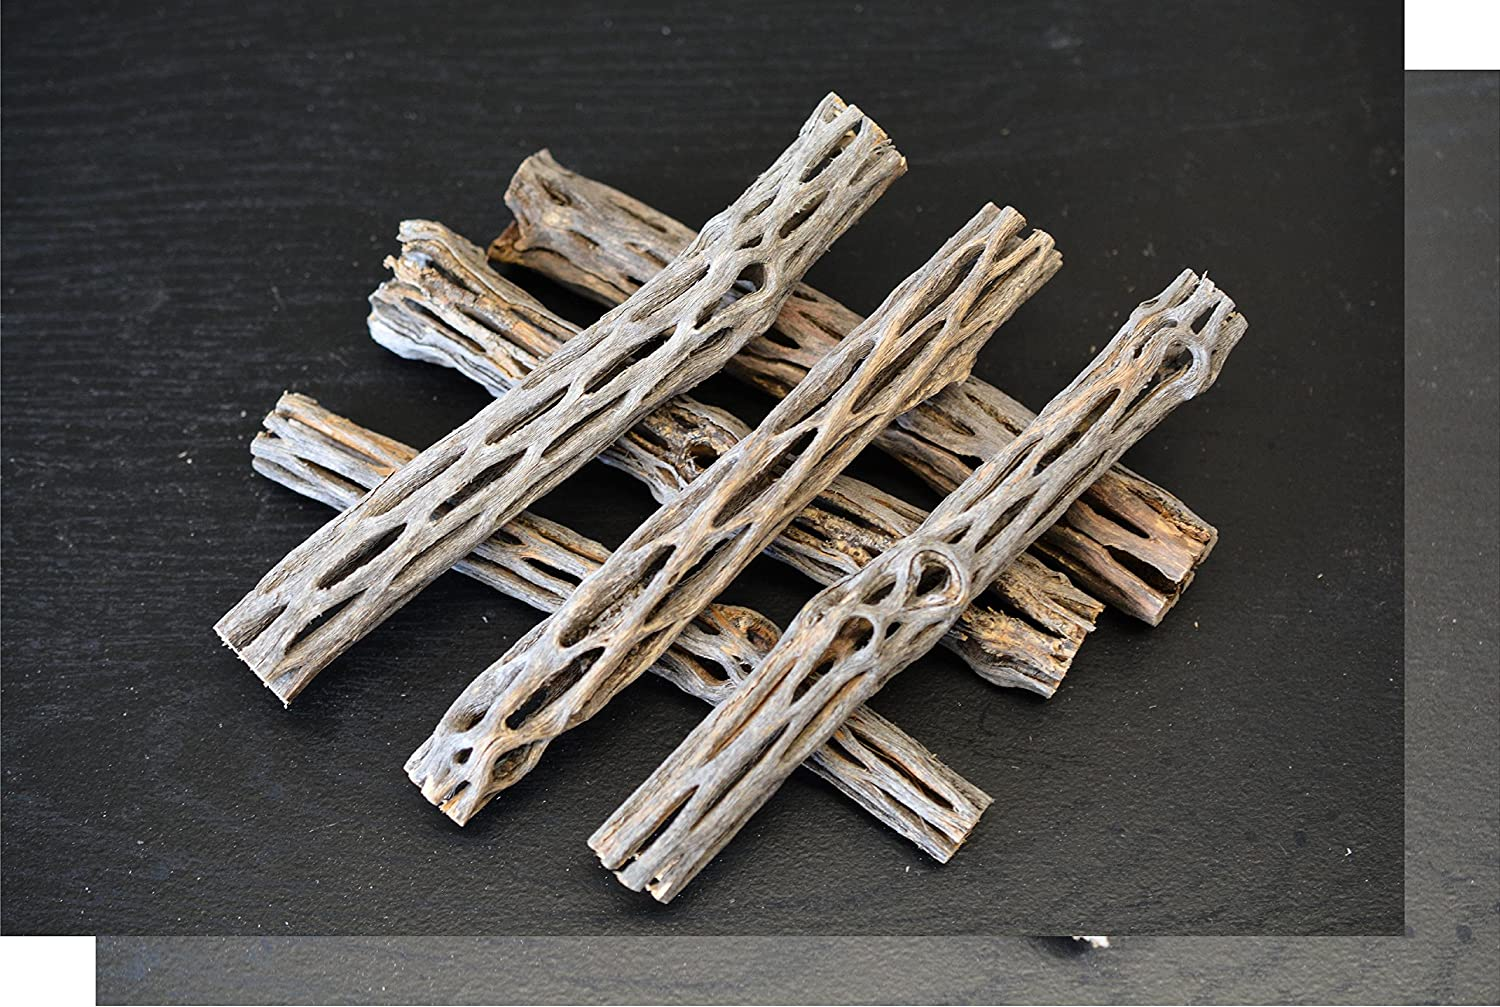 (8) CHOLLA WOOD S&C AQUATICS